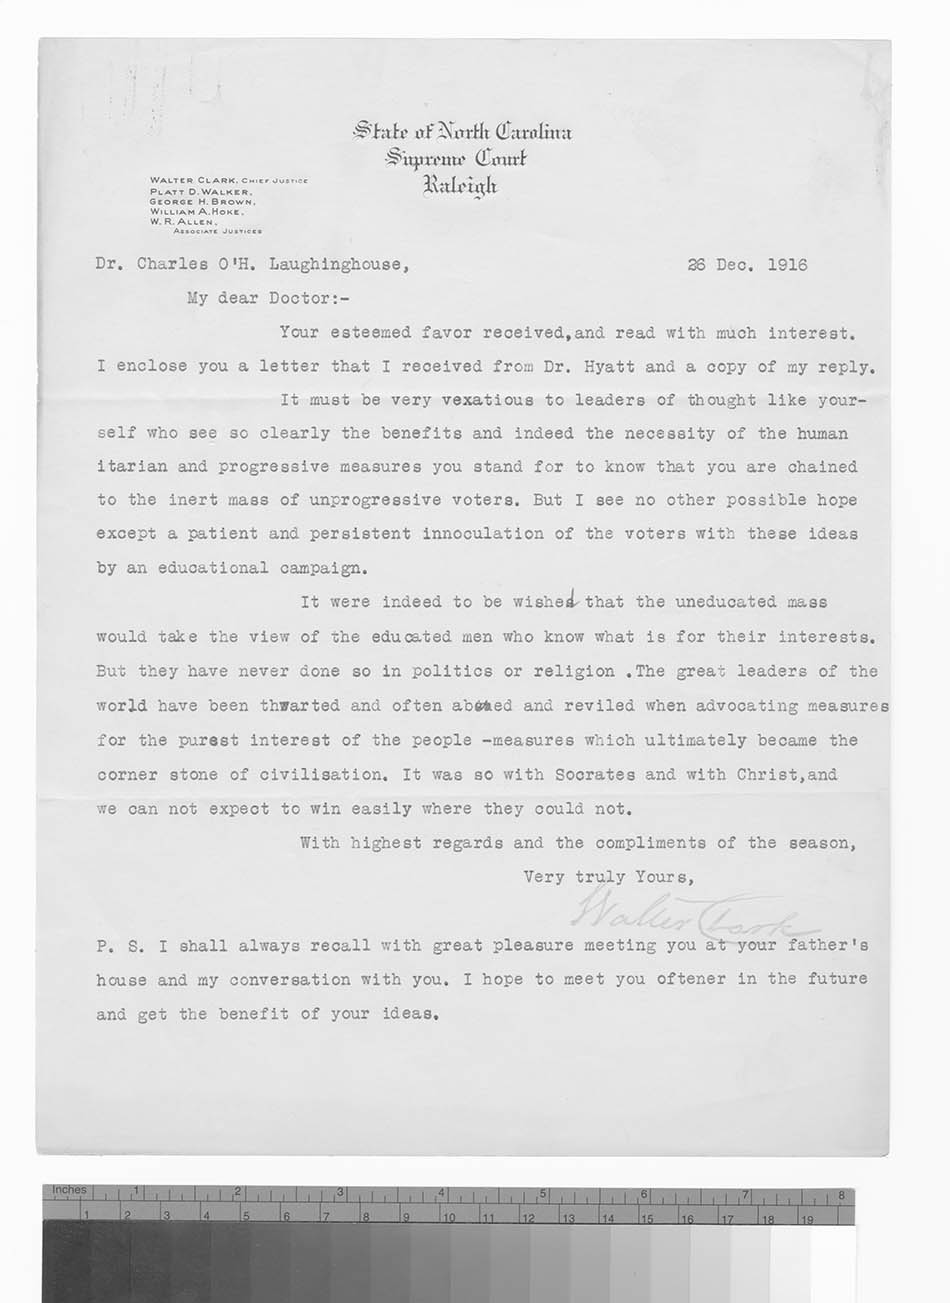 Letter to Dr. Charles O'Hagan Laughinghouse from Walter Clark